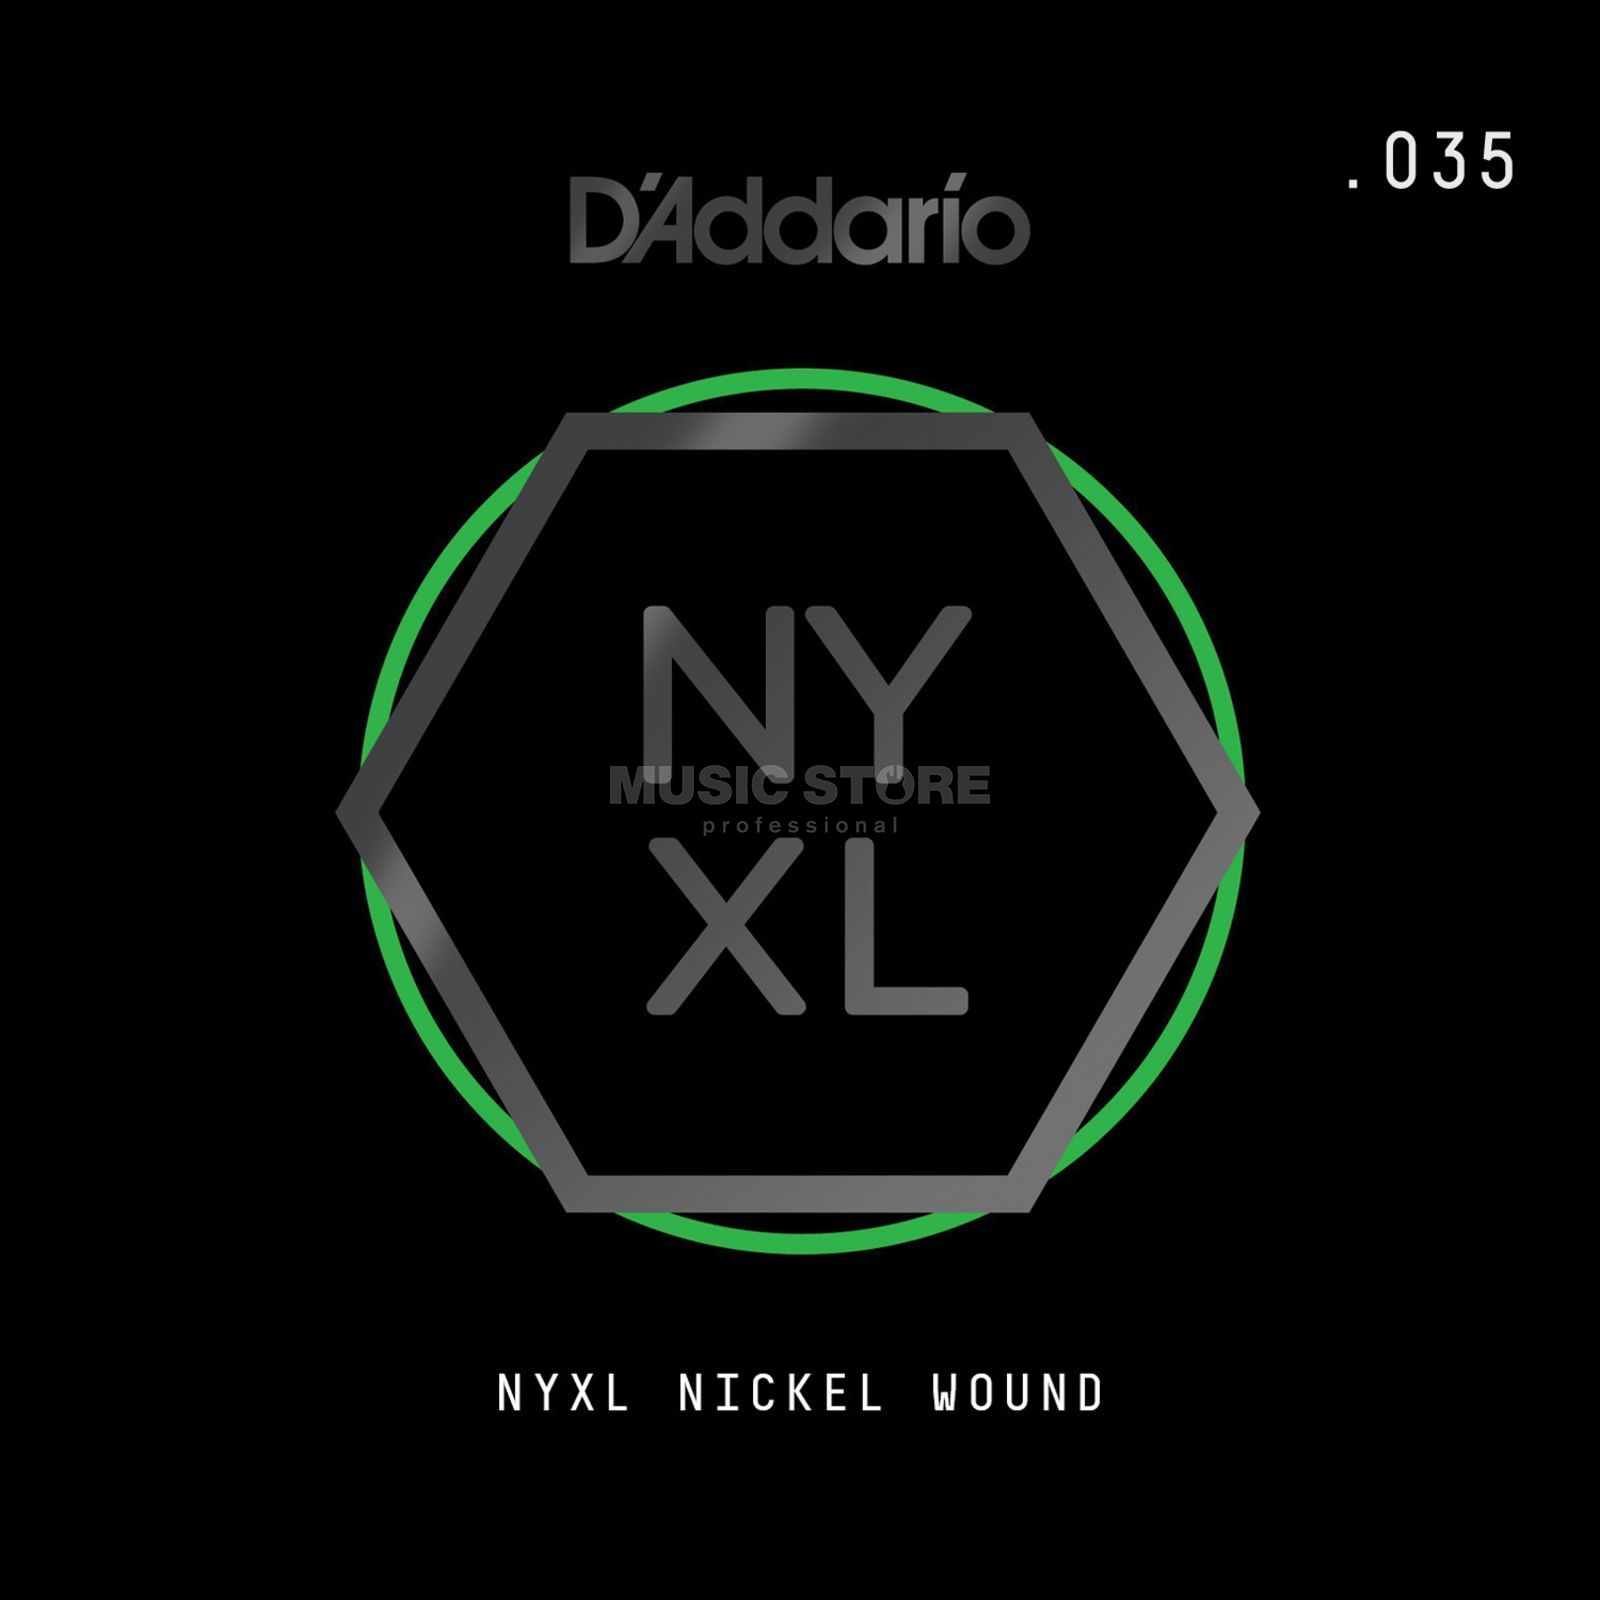 D'Addario NYNW035 Single String Nickel Wound Product Image